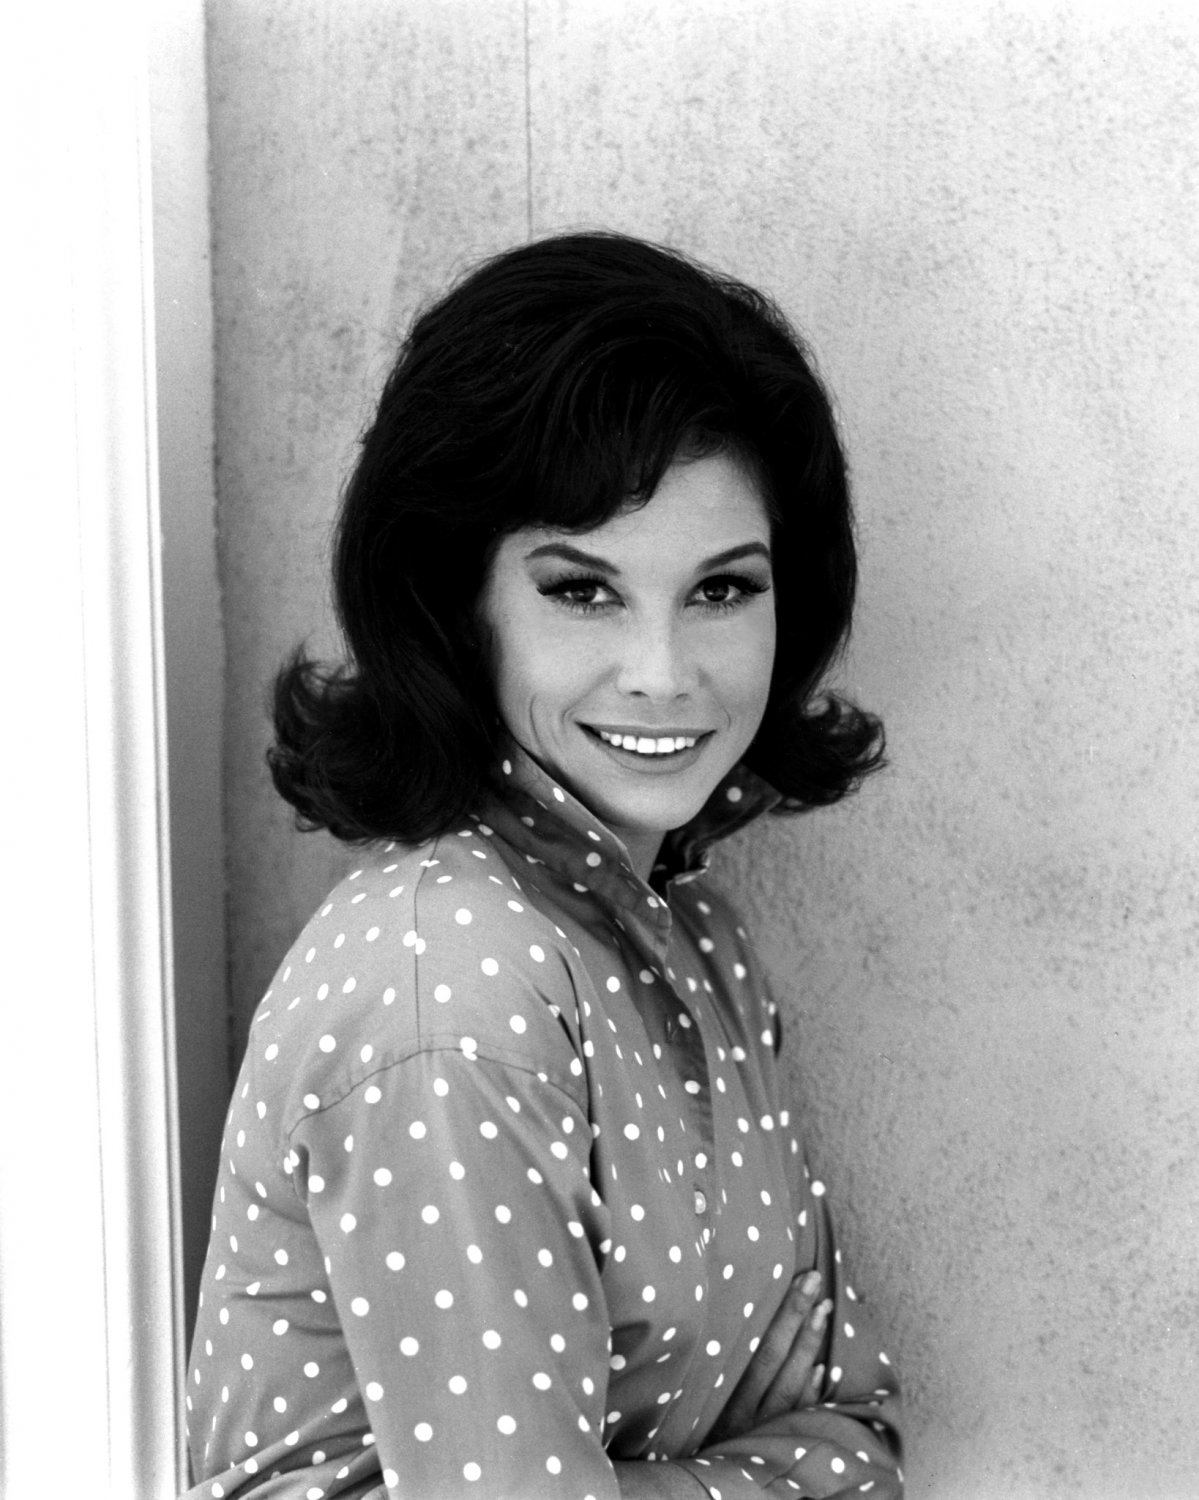 MARY TYLER MOORE TELEVISION AND FILM ACTRESS - 8X10 PUBLICITY PHOTO (ZY-765)